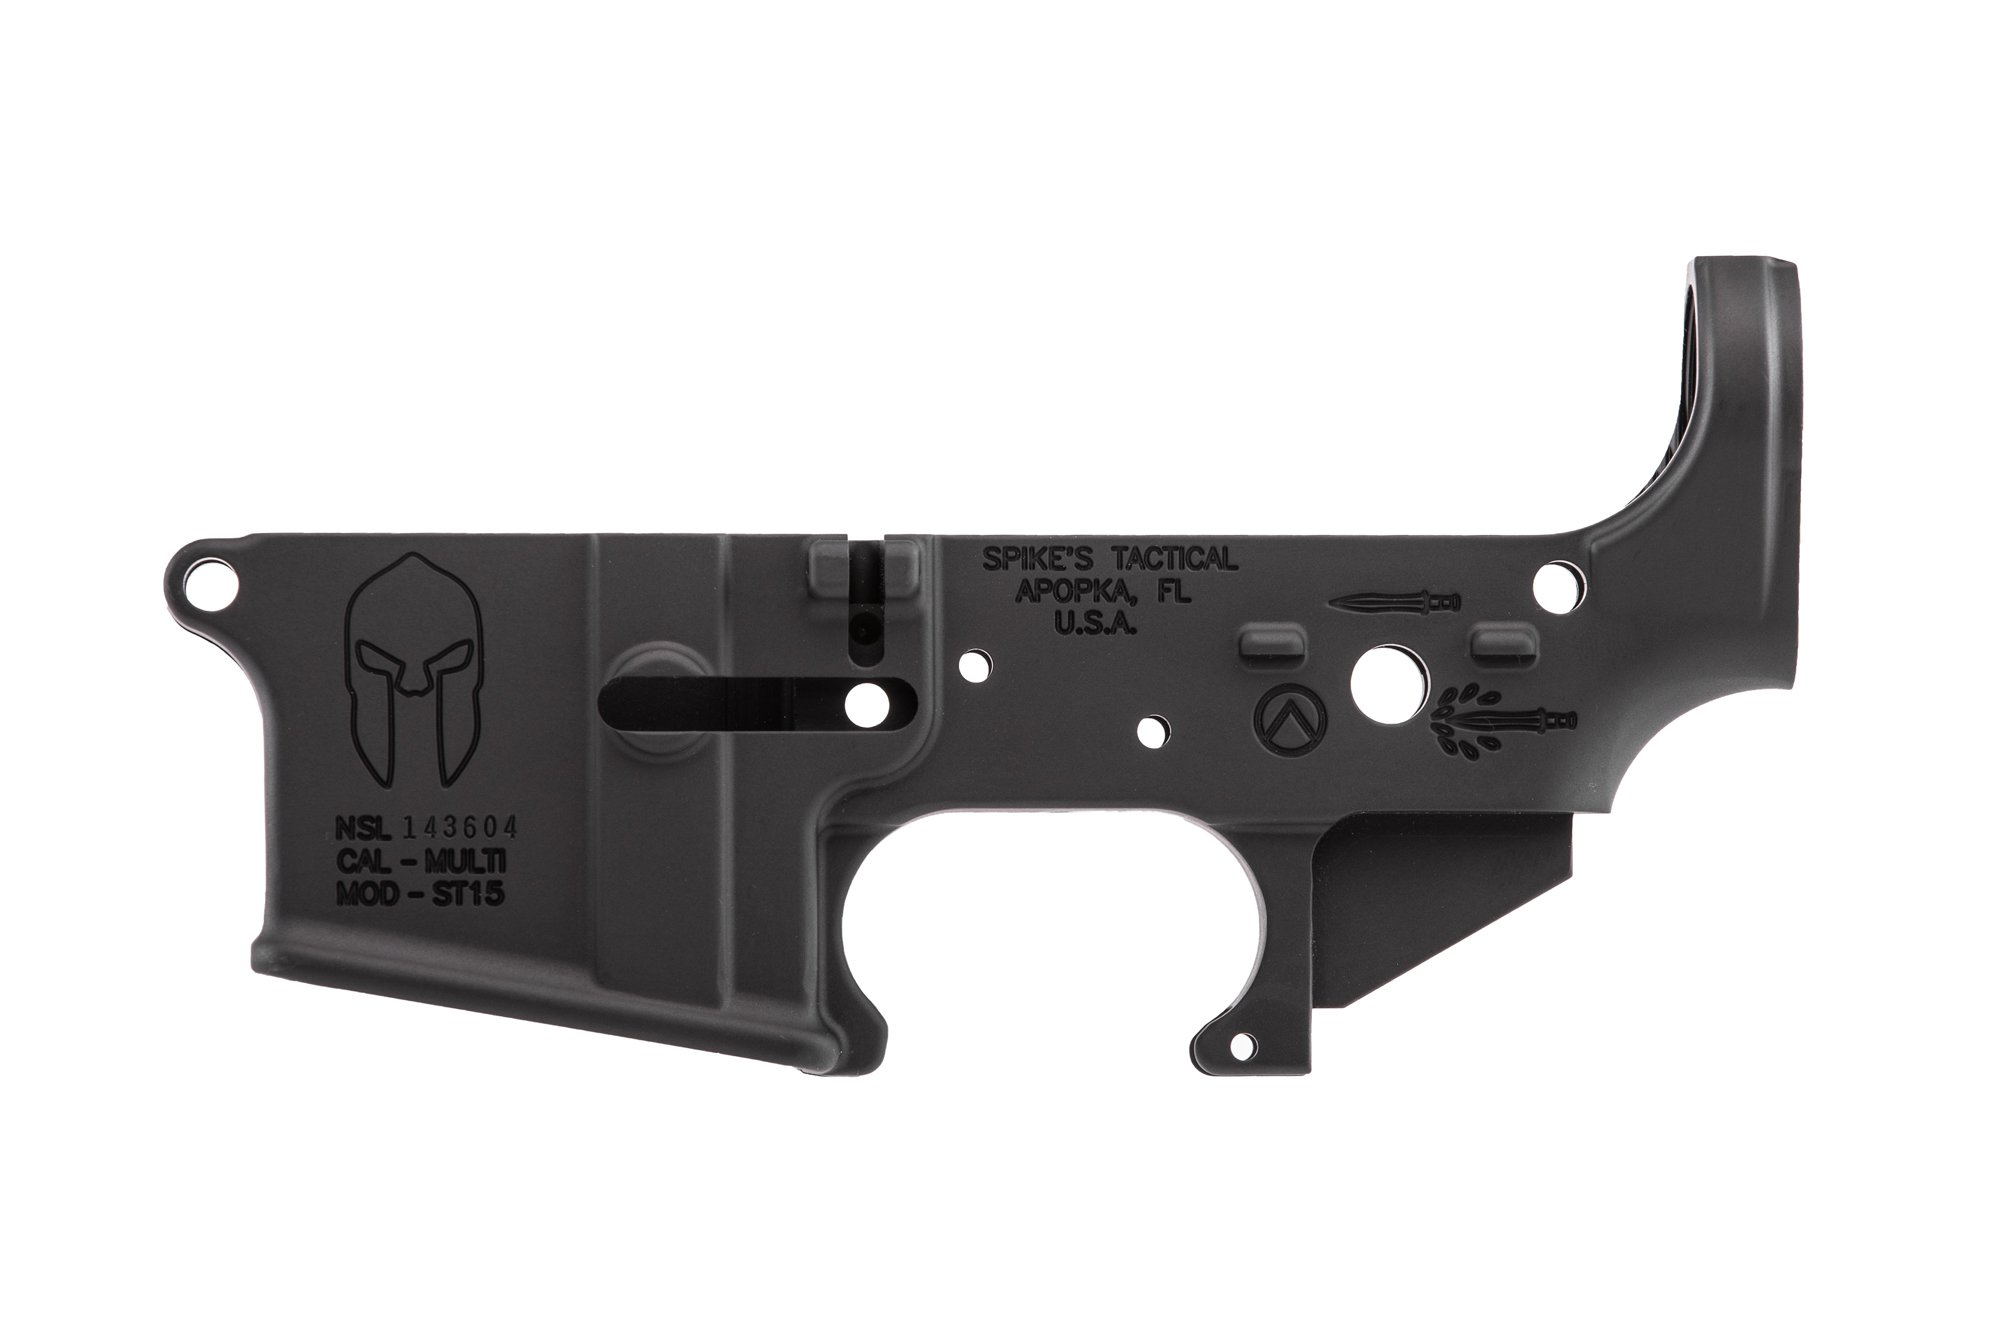 ar15-spikes-tactical-stripped-lower-receiver-spartan-logo-anodized-black-900222-3